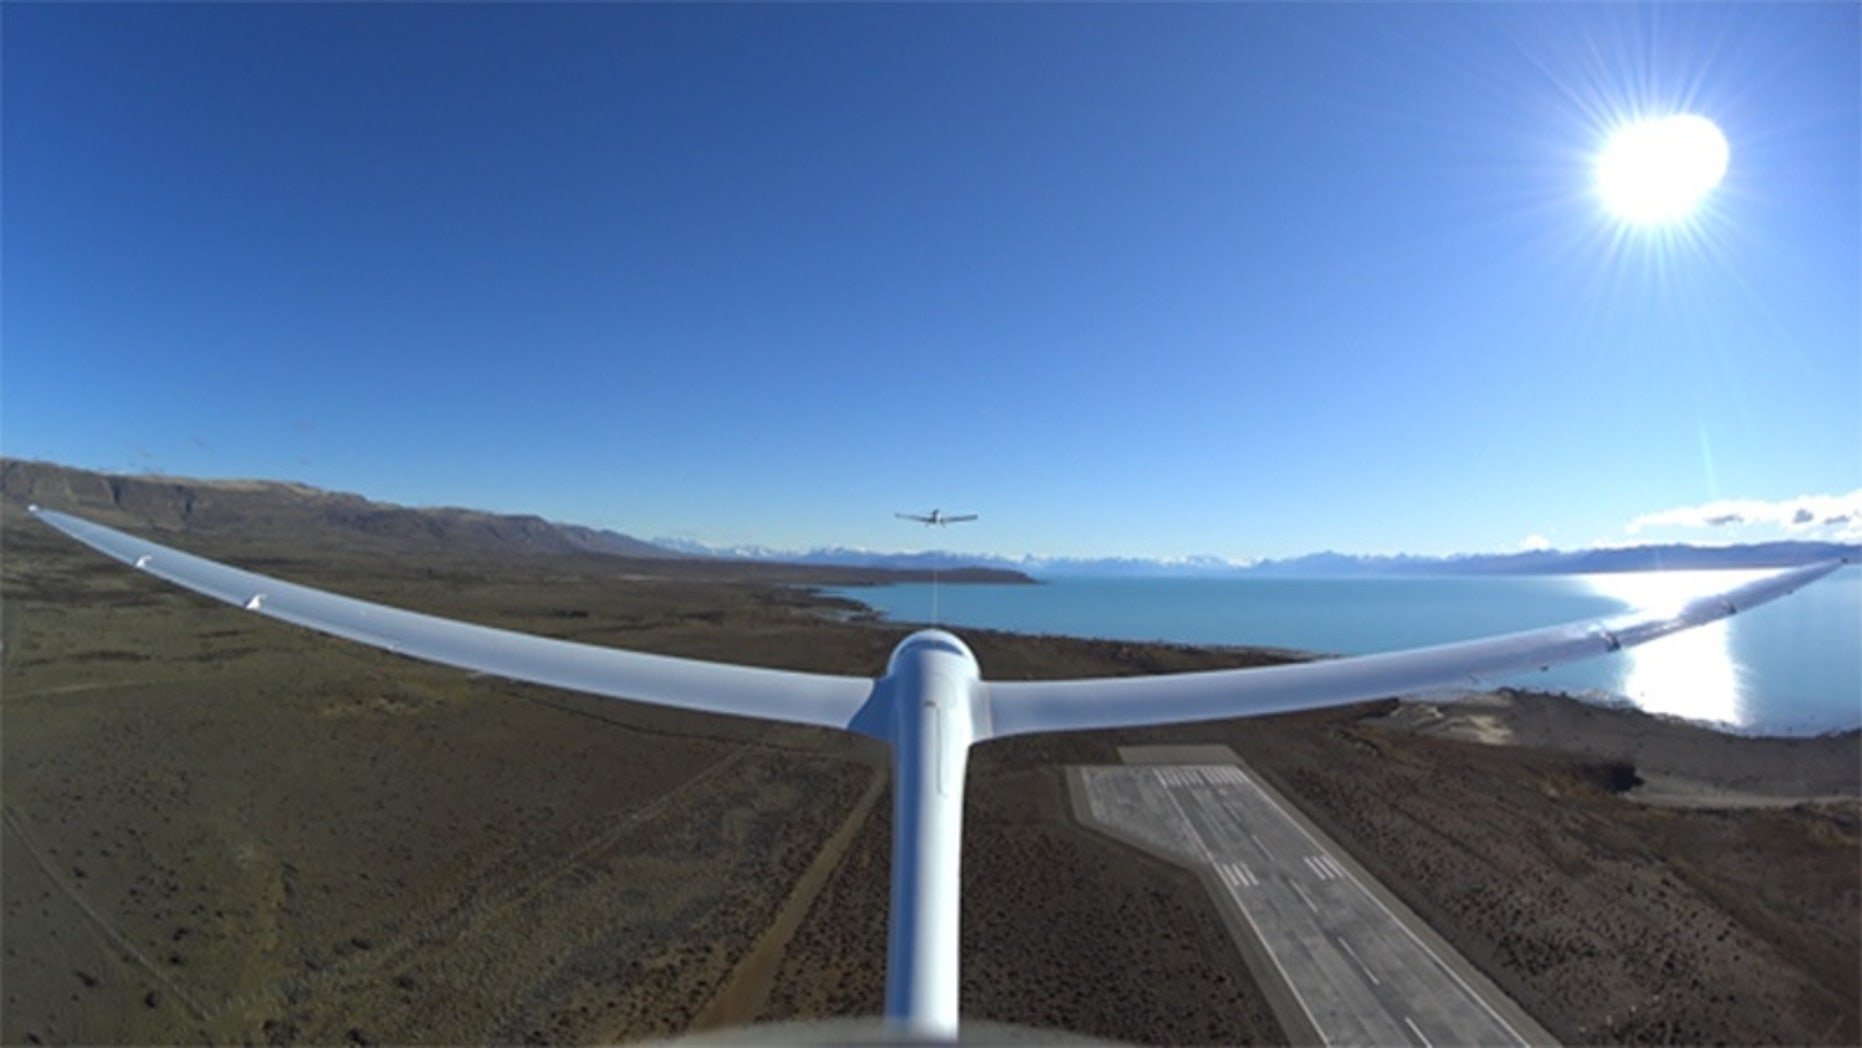 Researchers are currently conducting test flights in Argentina, and plan to ride the winds of Patagonia to reach record-breaking height.